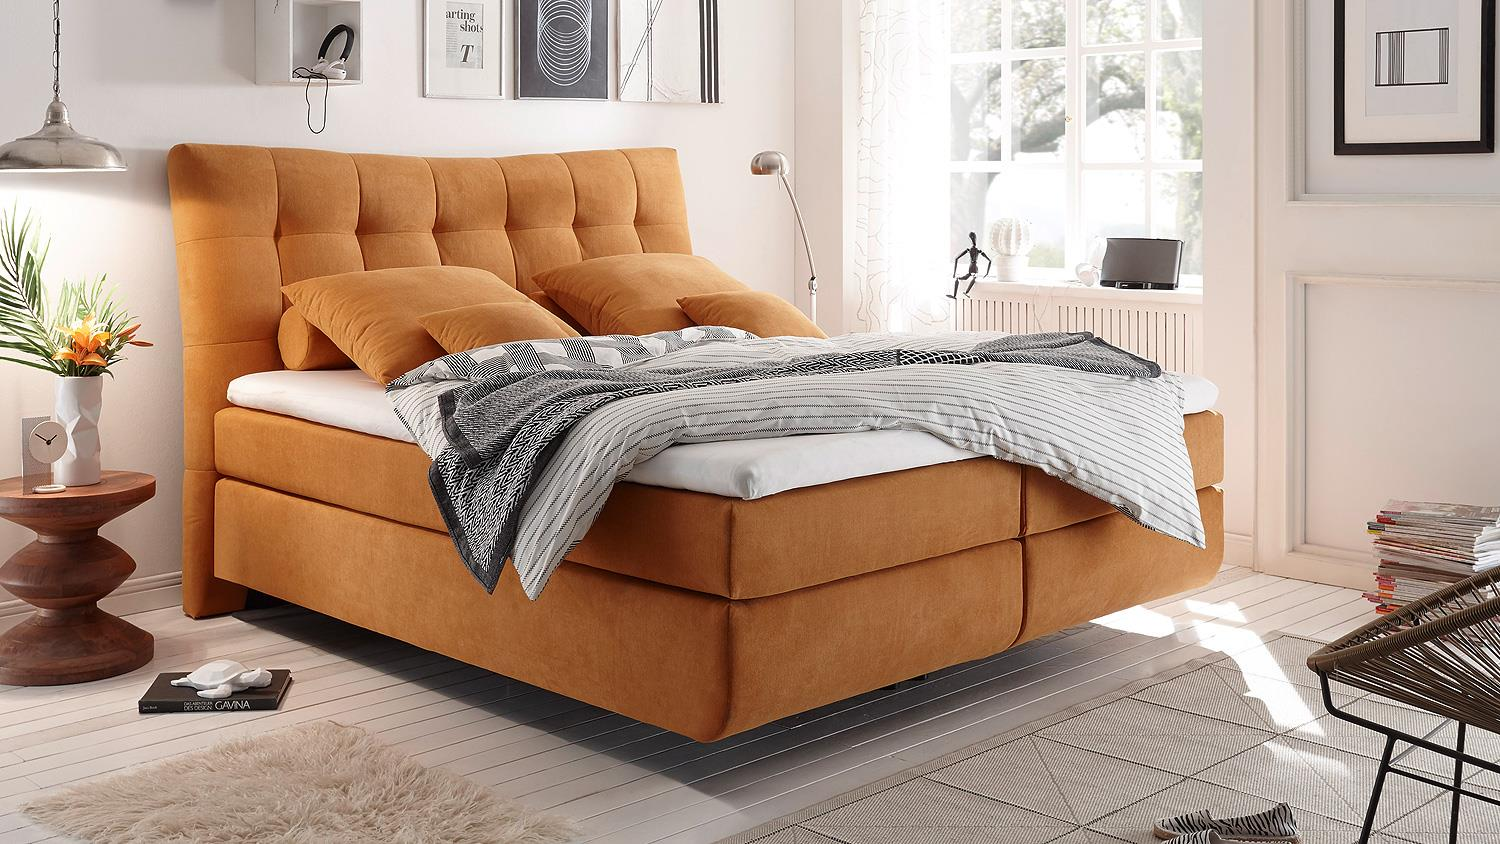 boxspringbett malibus in stoff orange 7 zonen ttk inkl. Black Bedroom Furniture Sets. Home Design Ideas